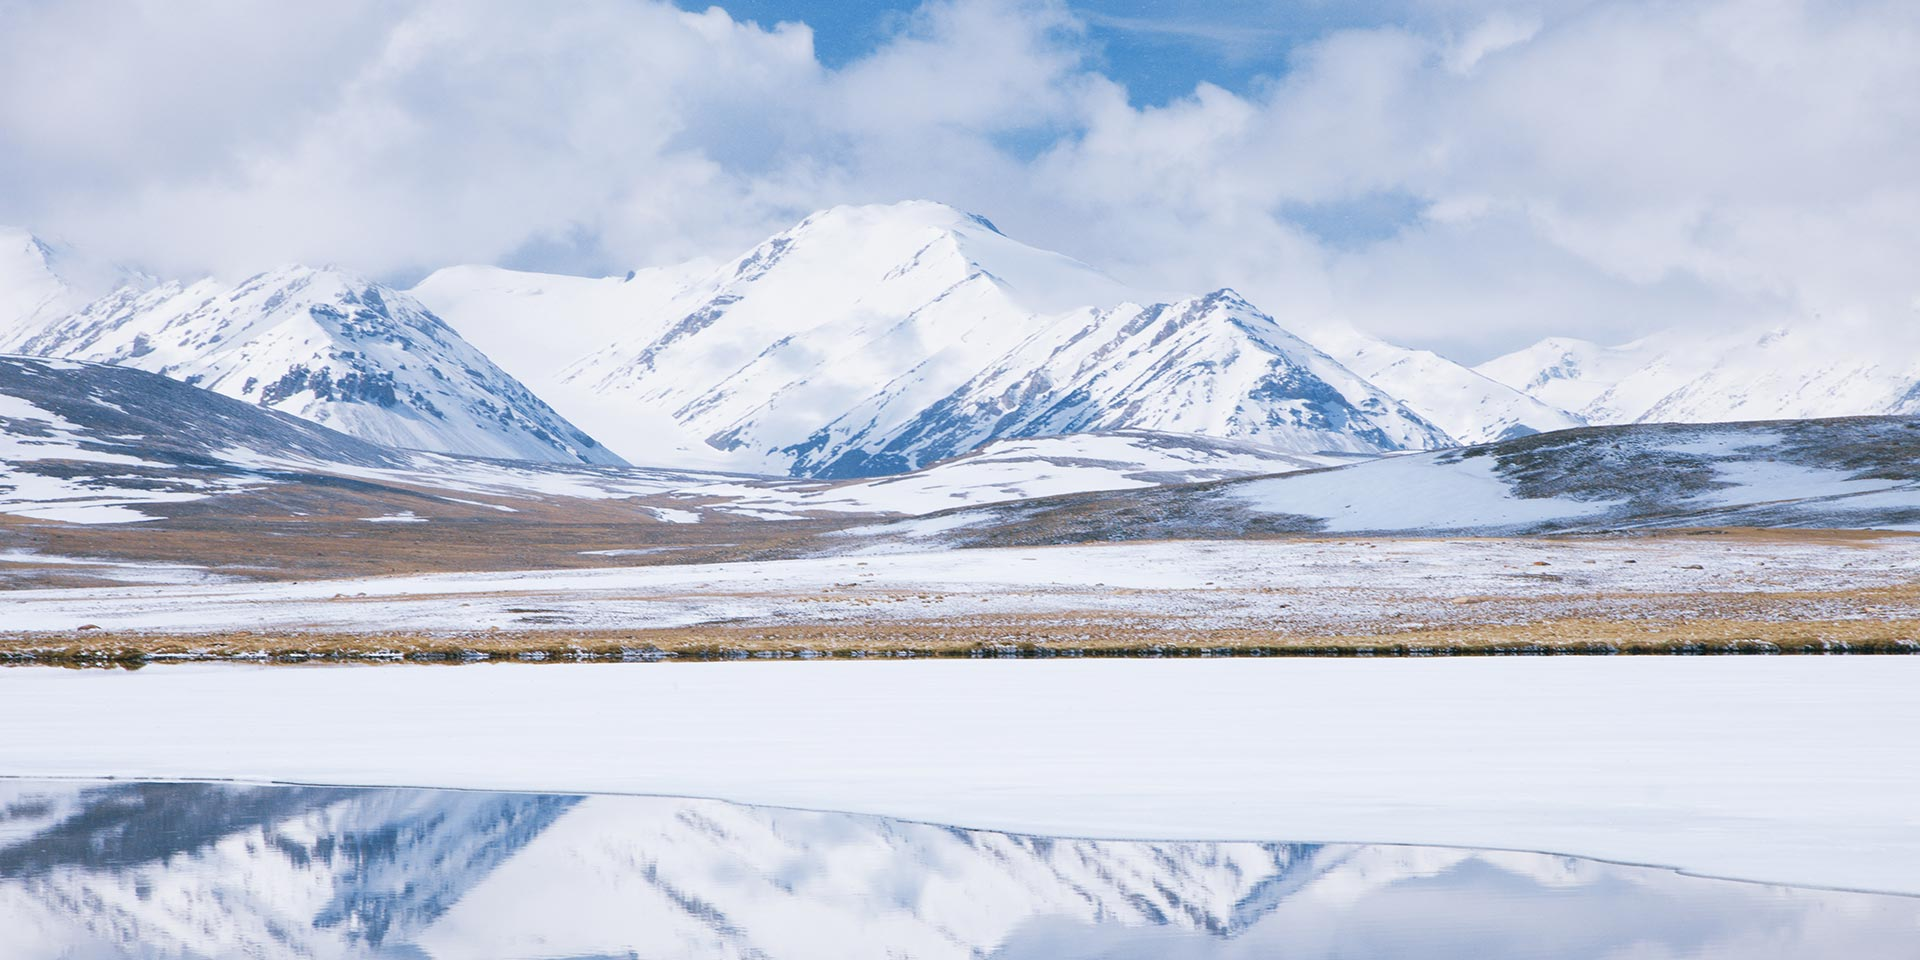 Remote Lands Cold Winter Pick: Kyrgyzstan for the Scenery and Skiing